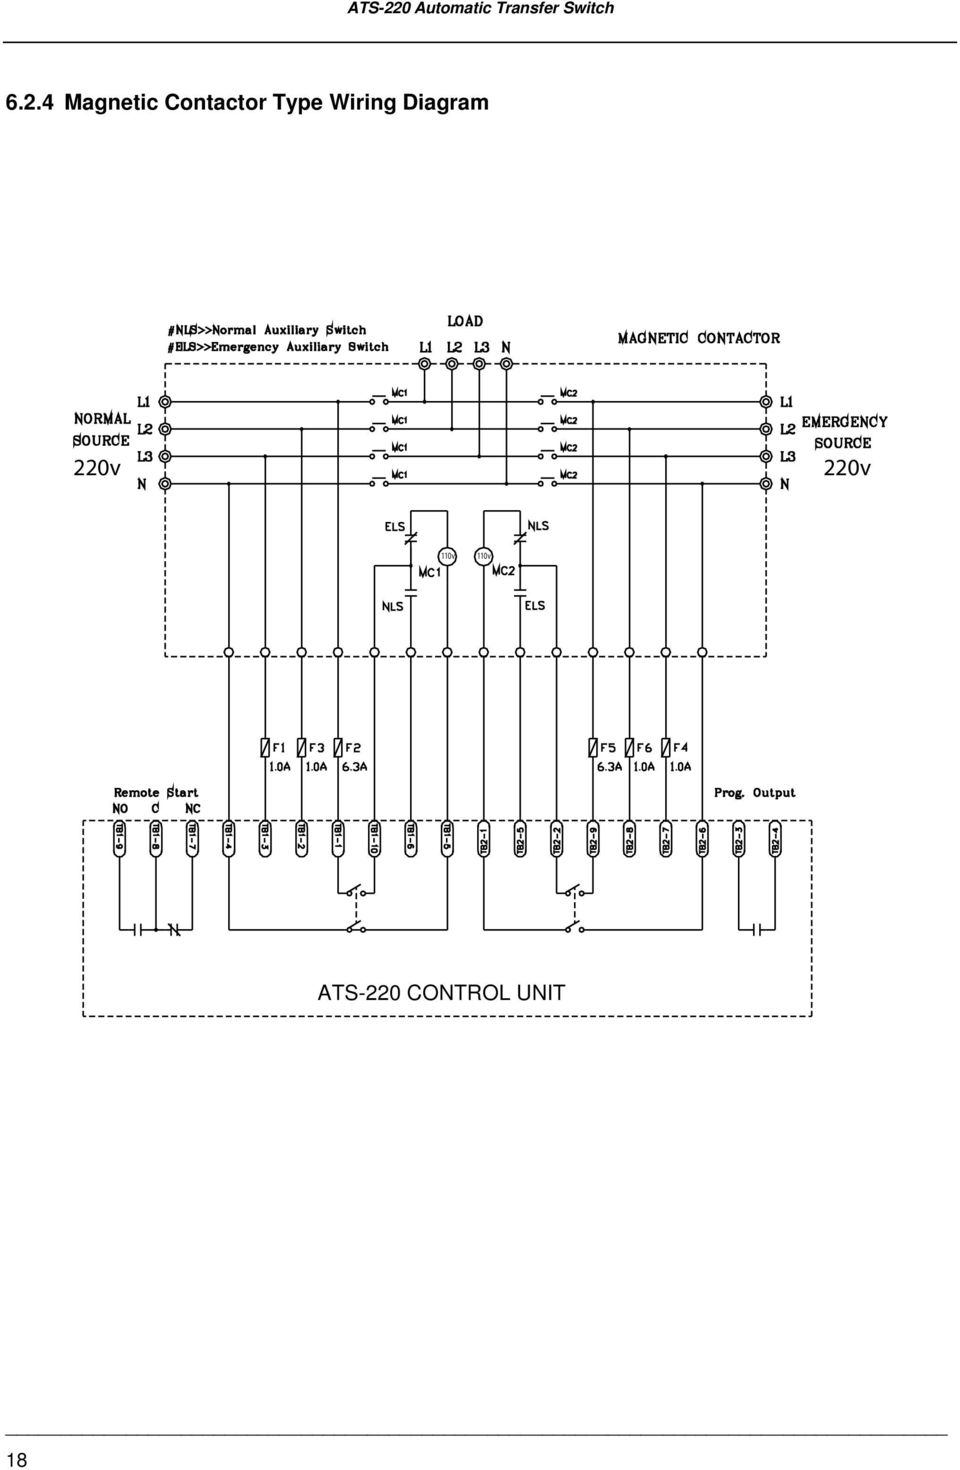 Wiring Diagram Of Ats